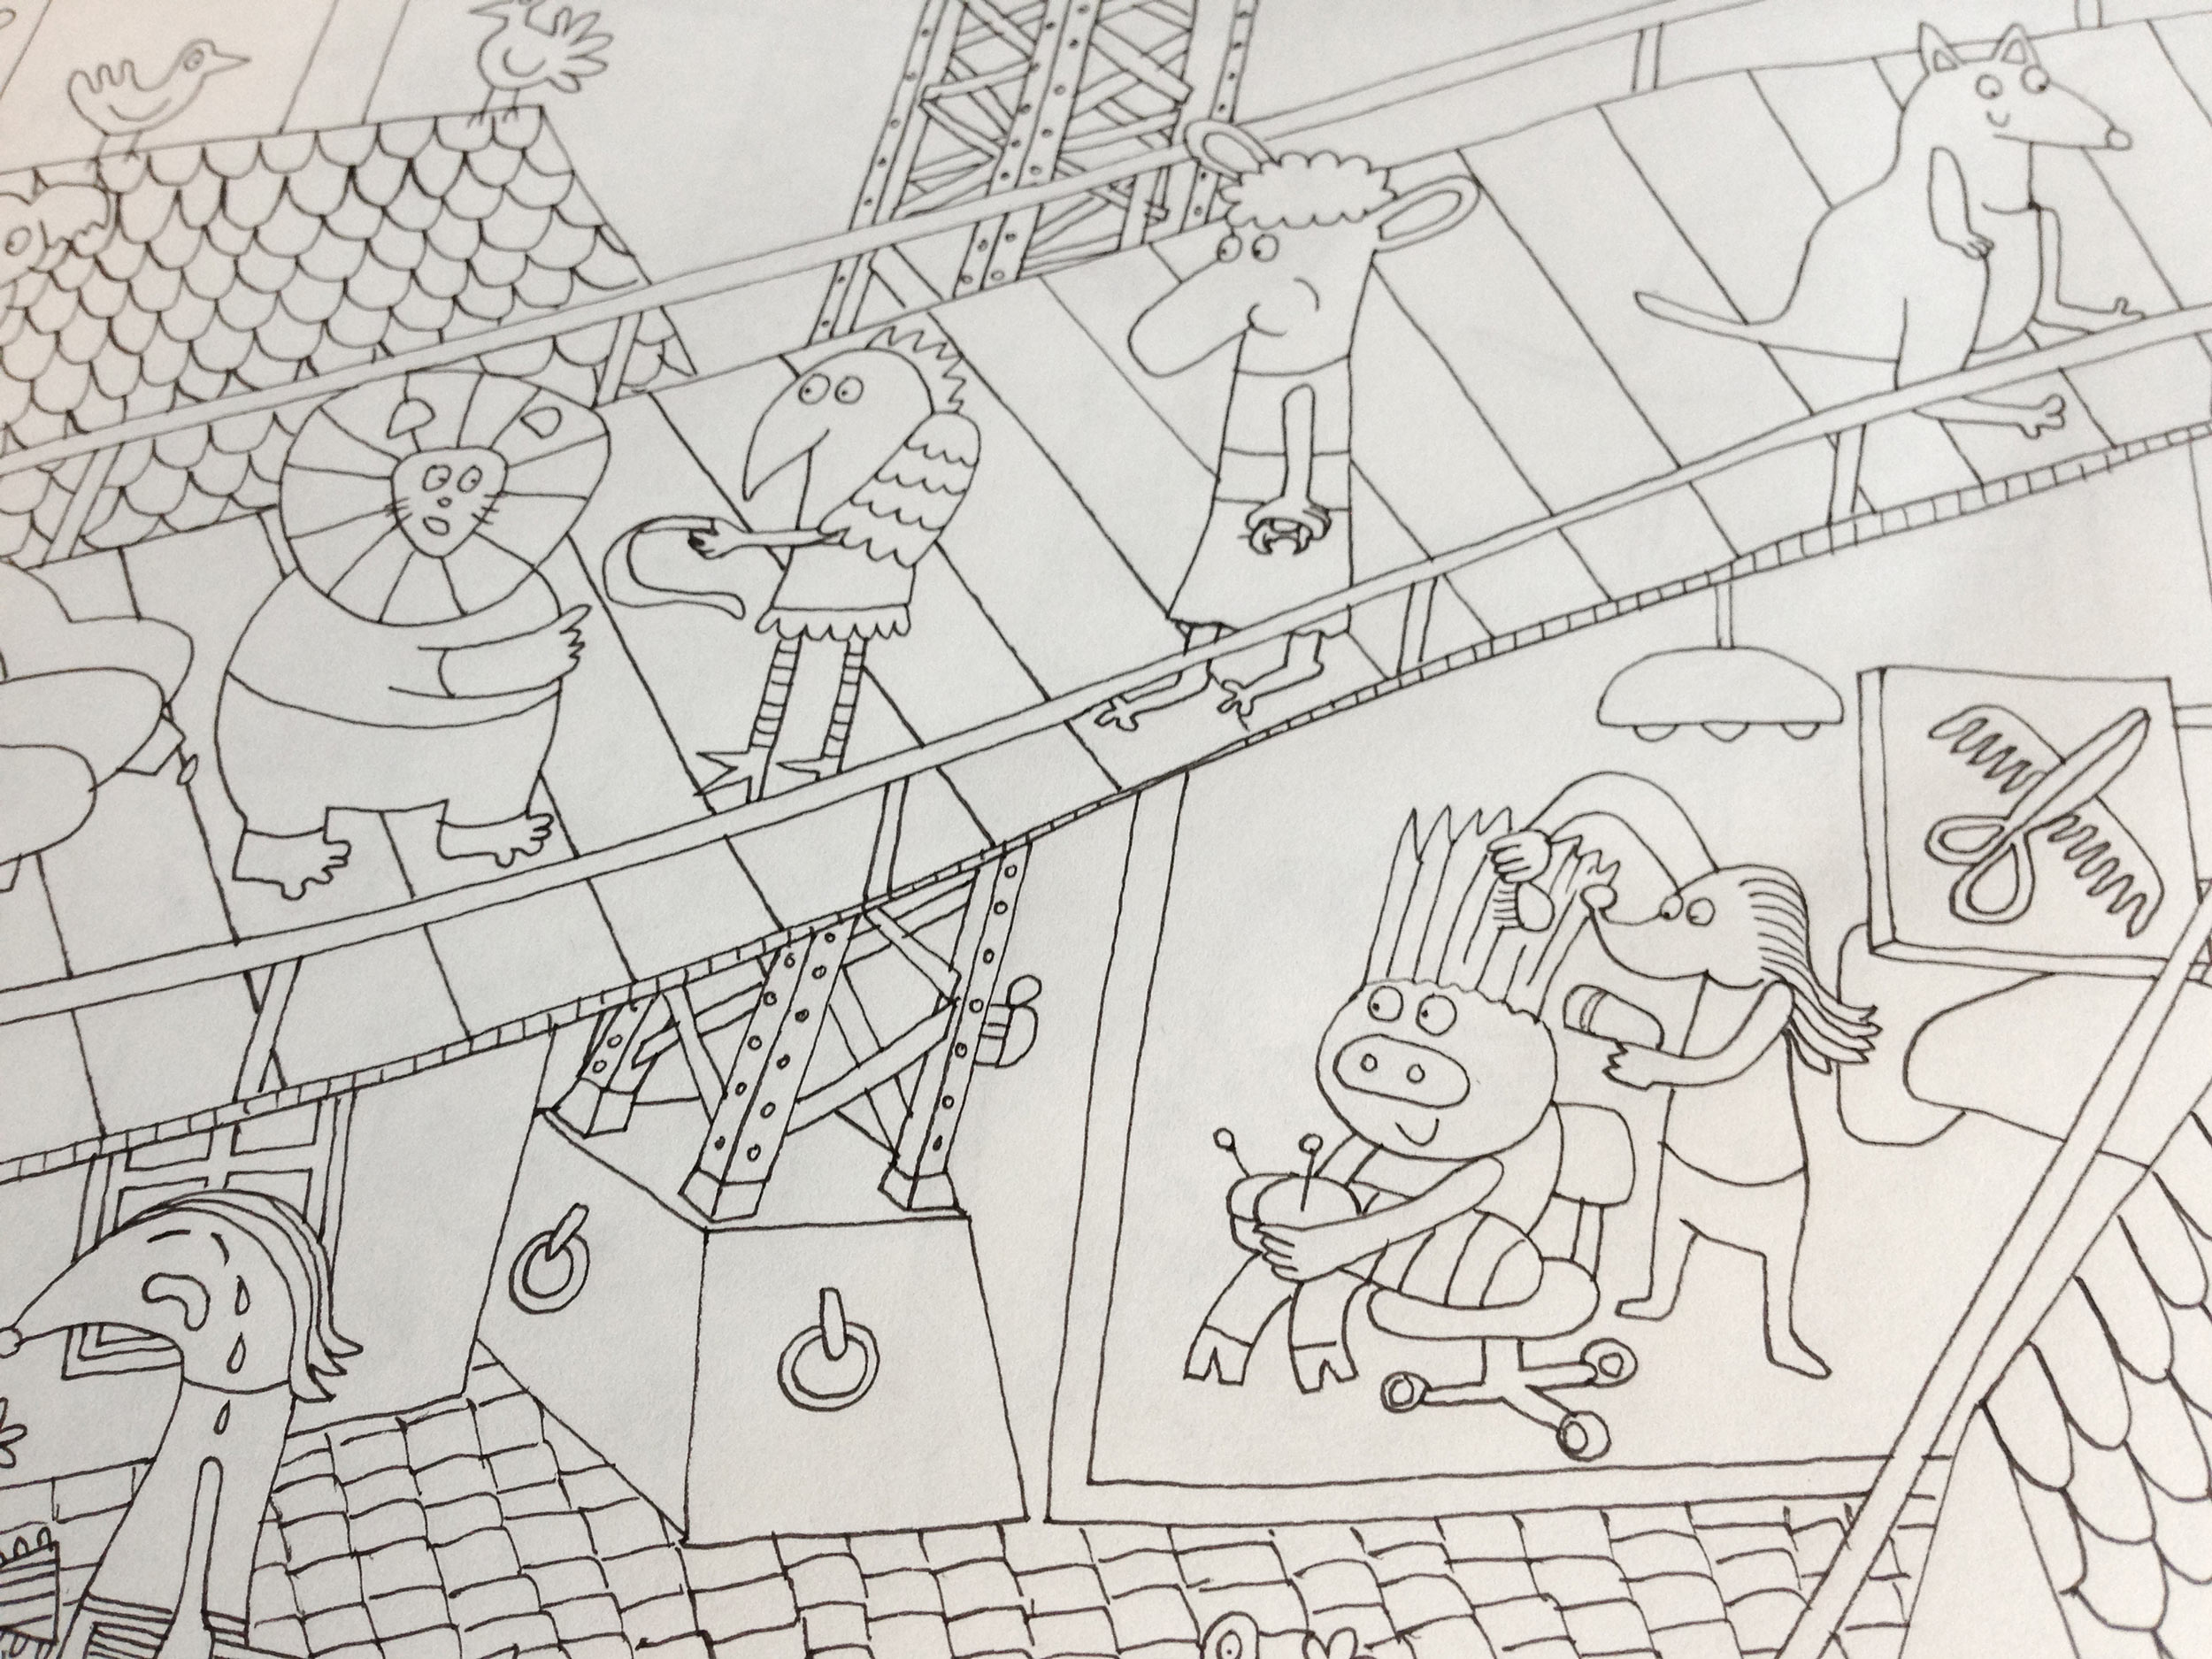 Tracing the draft with fine liners and adding textures and more details.